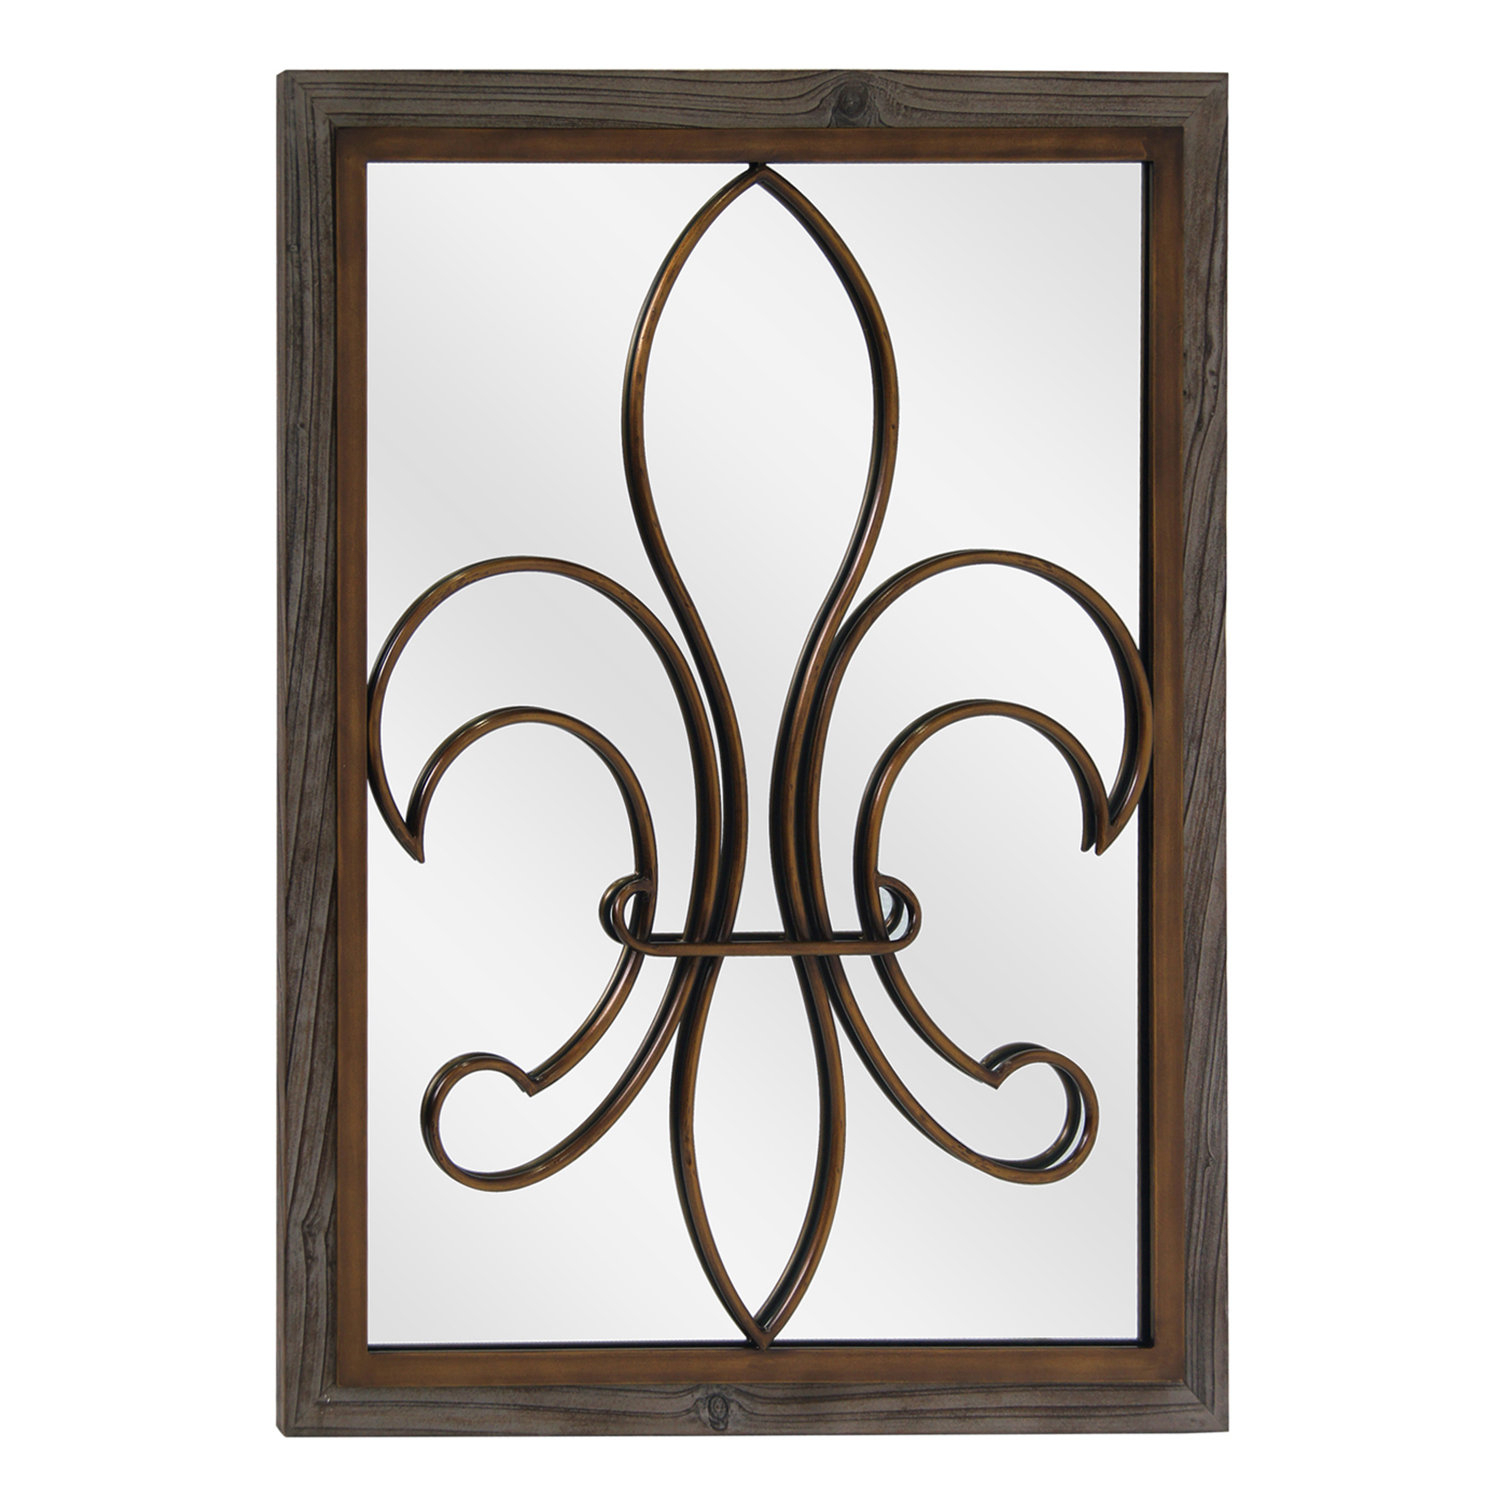 Fleur De Lis Metal Wall Art | Wayfair Inside 2 Piece Metal Wall Decor Sets By Fleur De Lis Living (View 9 of 30)